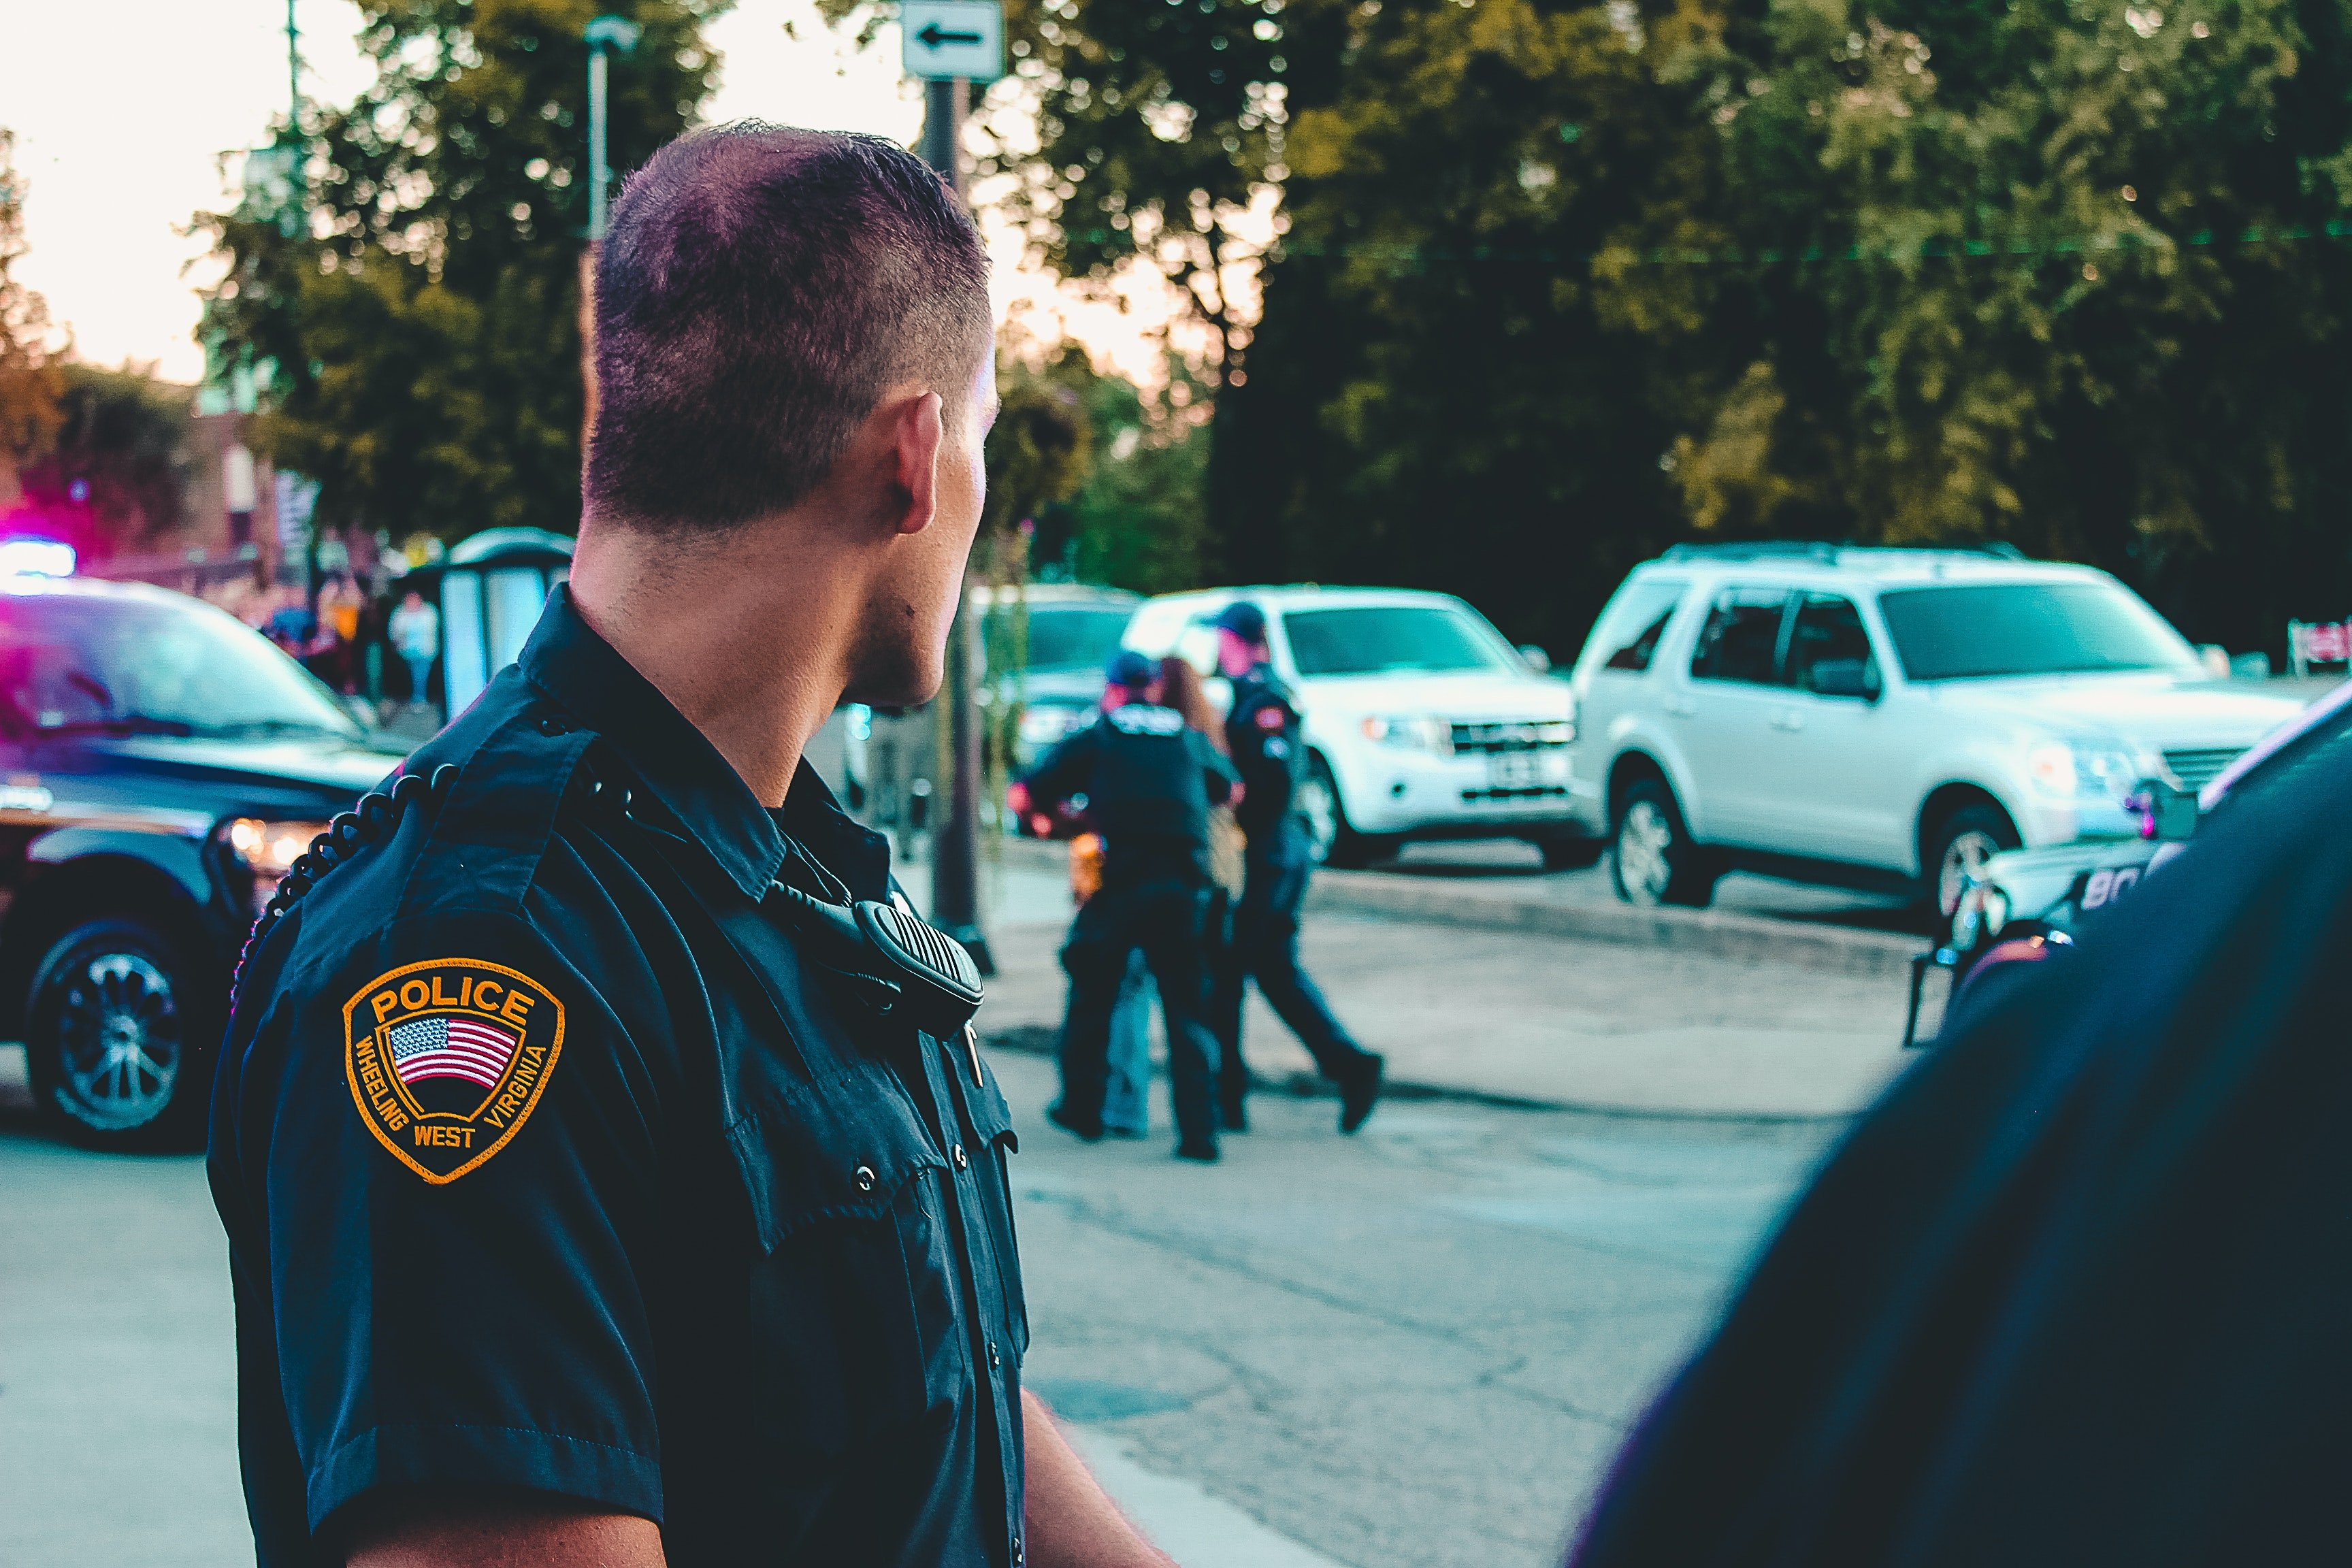 Police officer looking back toward a vehicle.   Photo: Pexels